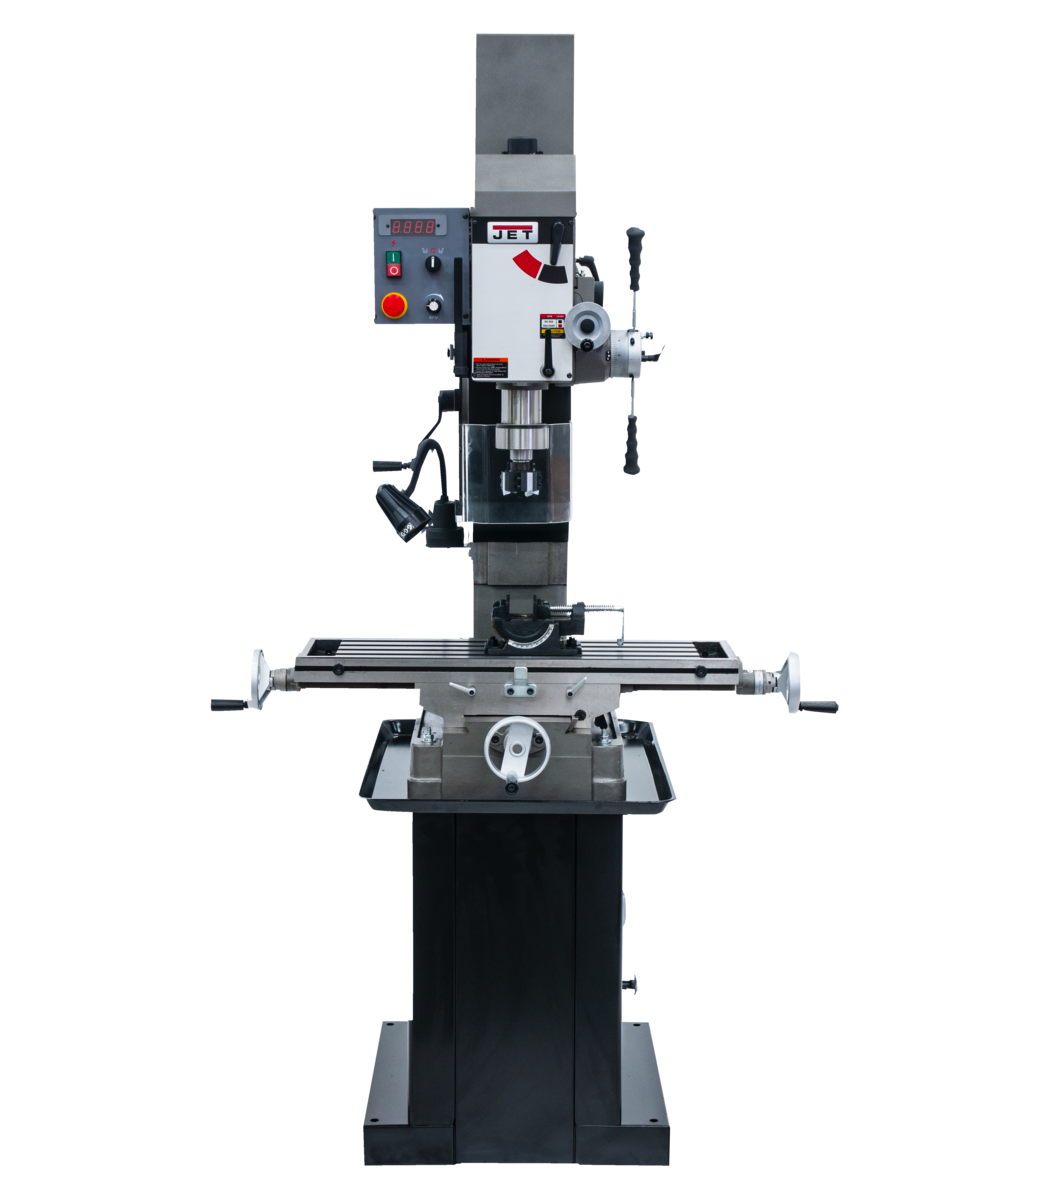 JMD-45VSPF Variable Speed Square Column Geared Head Mill/Drill with Newall DP500 2-Axis DRO & X-Axis